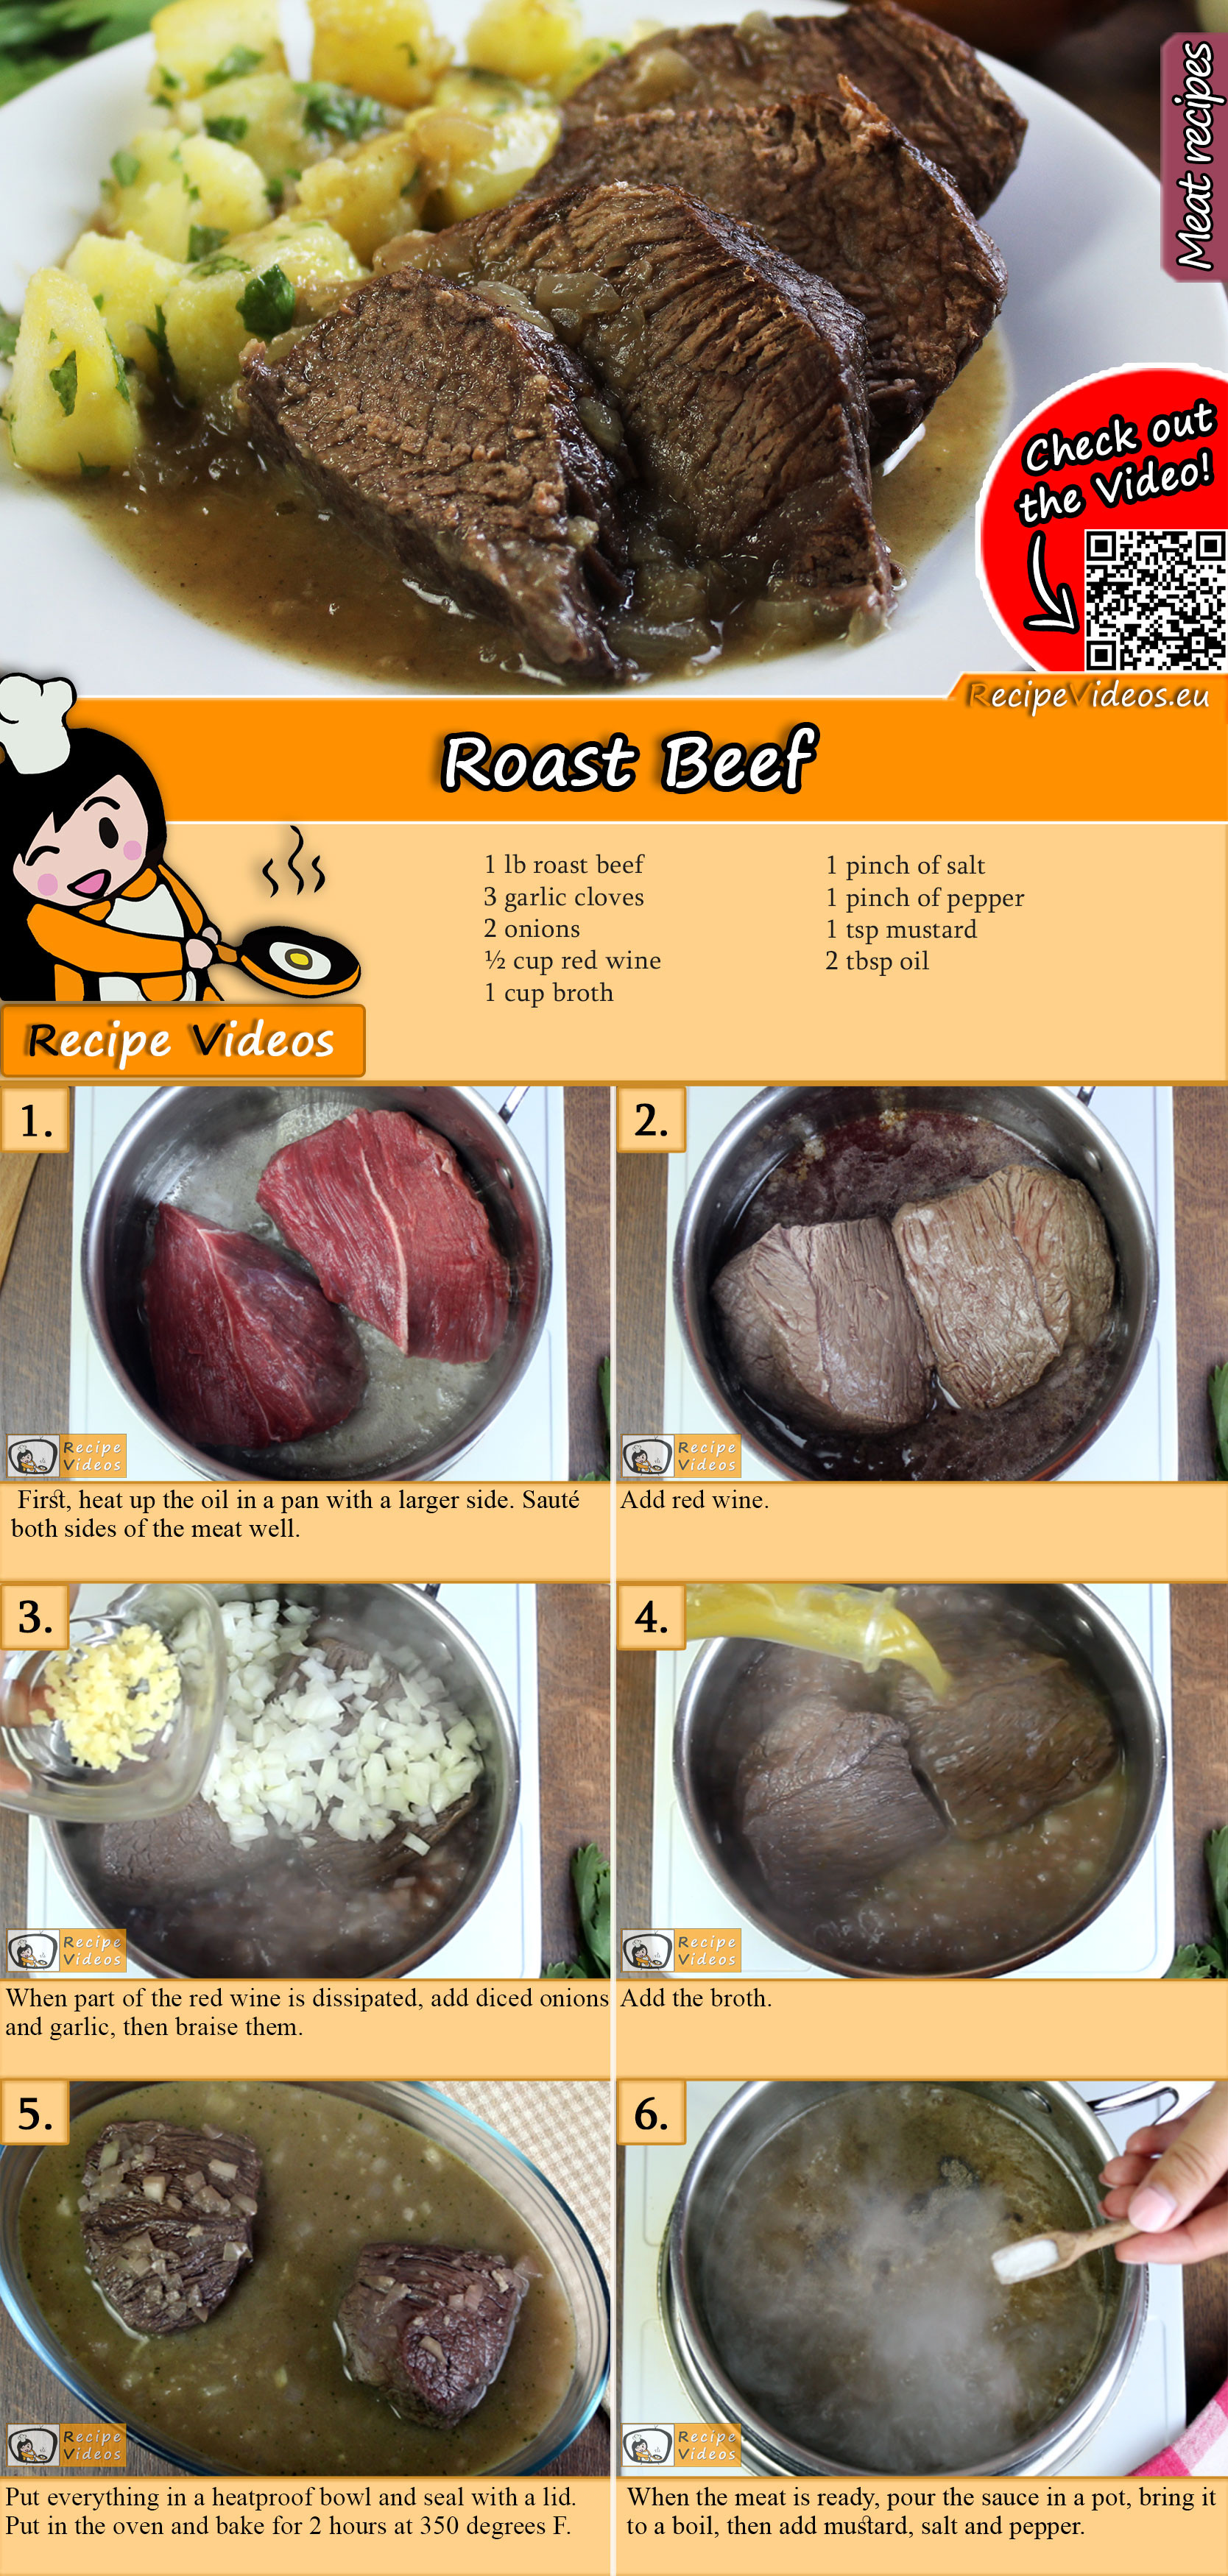 Roast Beef recipe with video